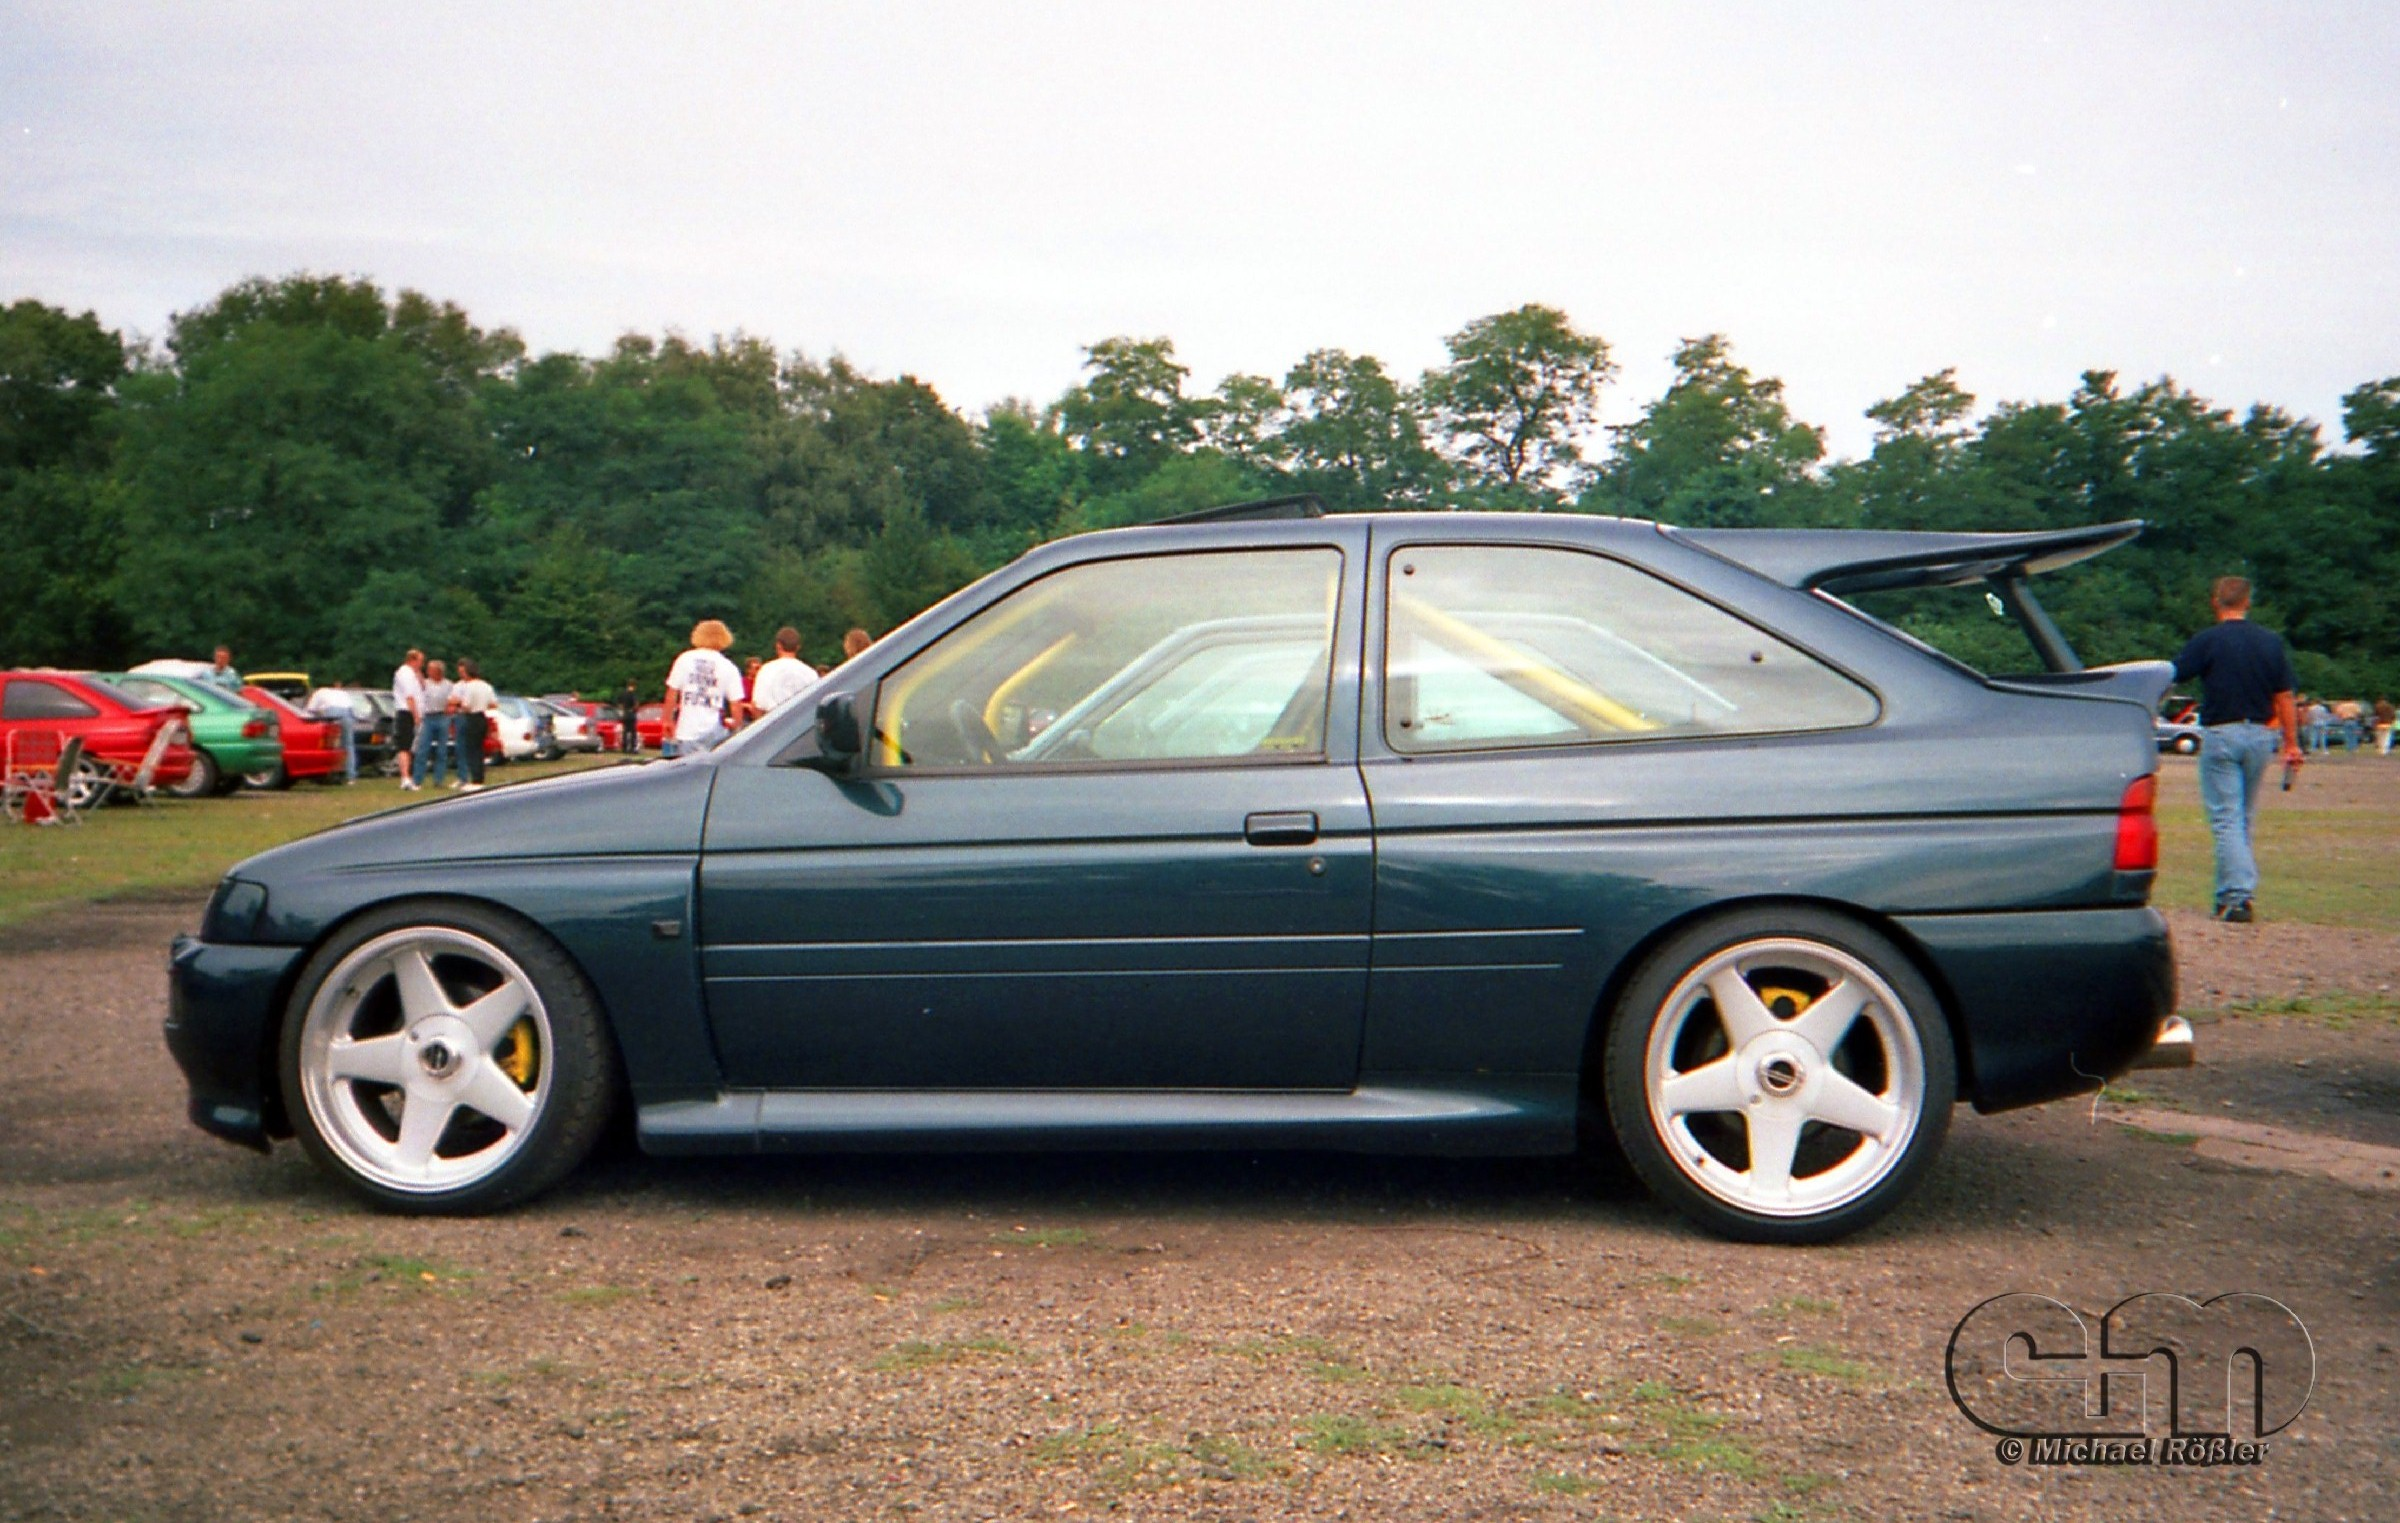 Ford Escort RS Cosworth images